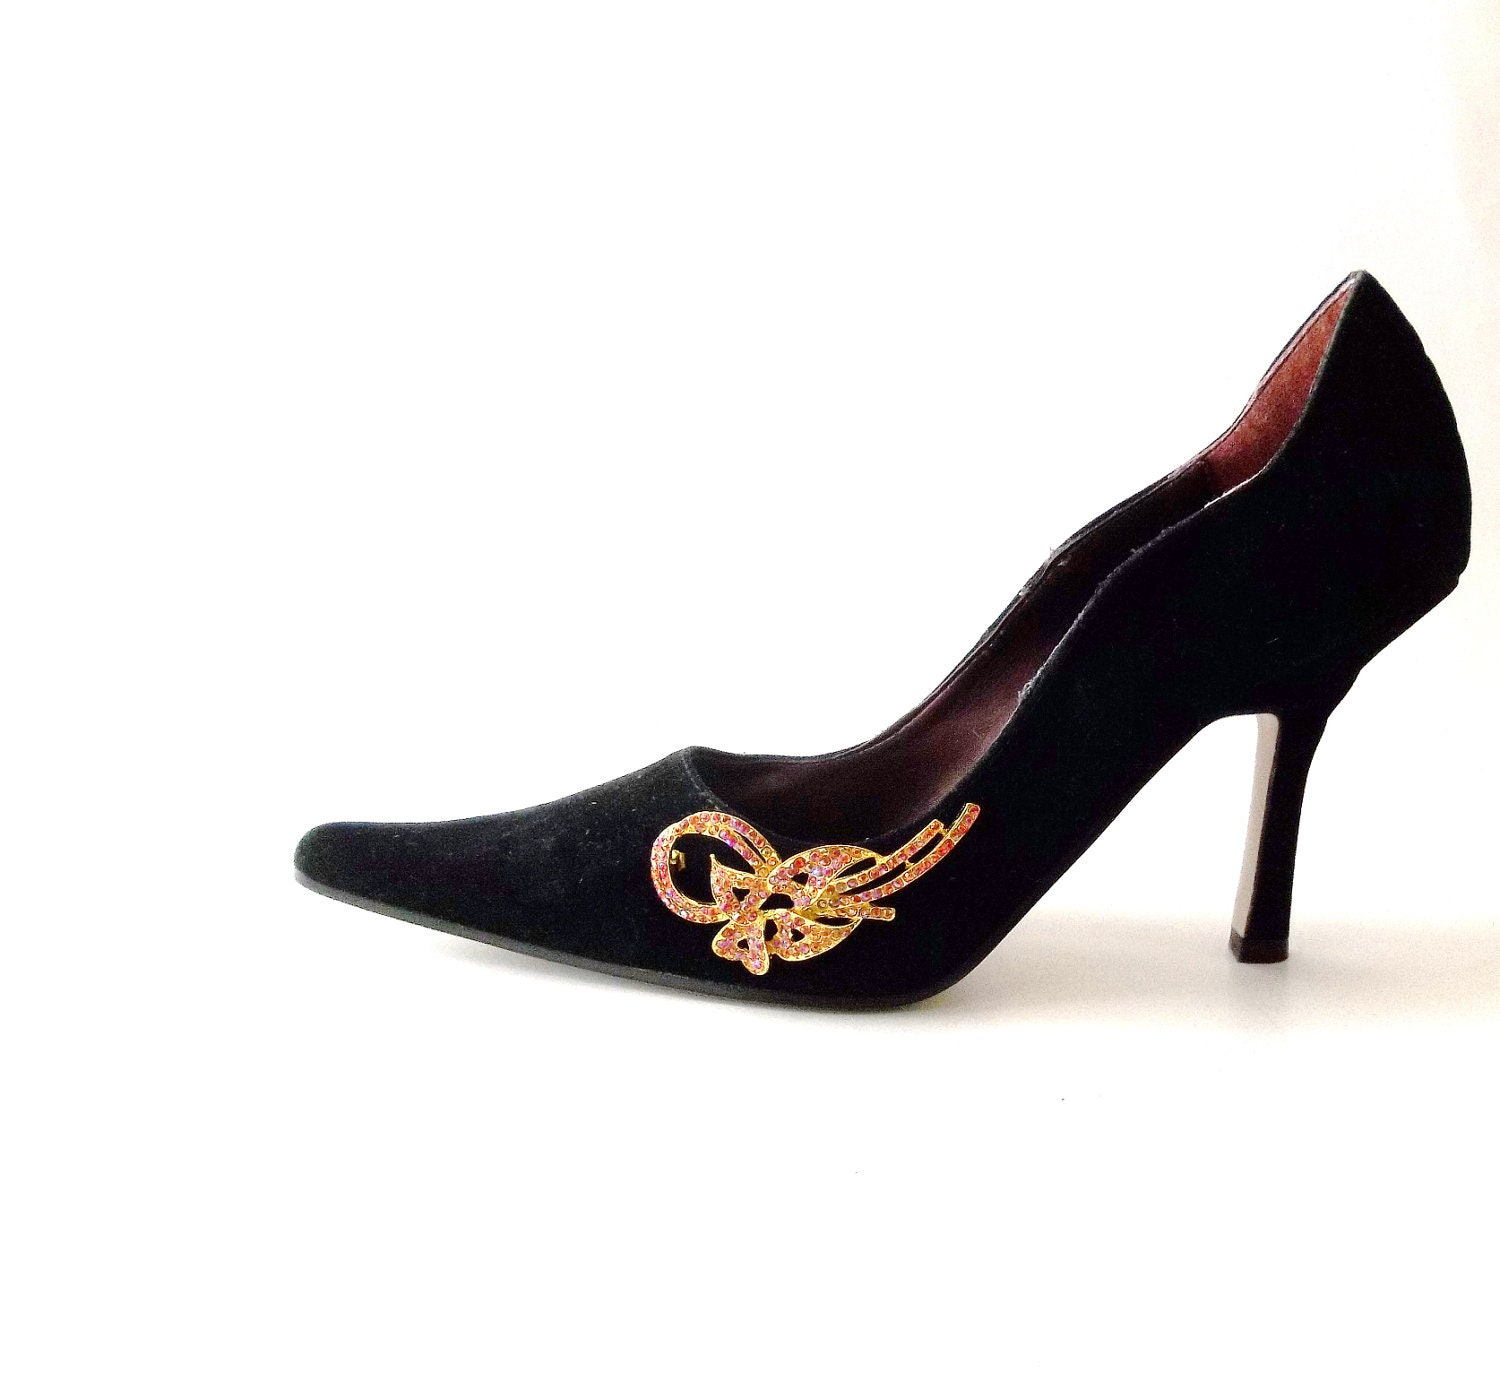 Vintage Black Suede High Heels Pumps. Shoe Clips.Honey Gold Bows. Holiday Sparkle. Size 6.5 - GLAMOURGIRLCHIC